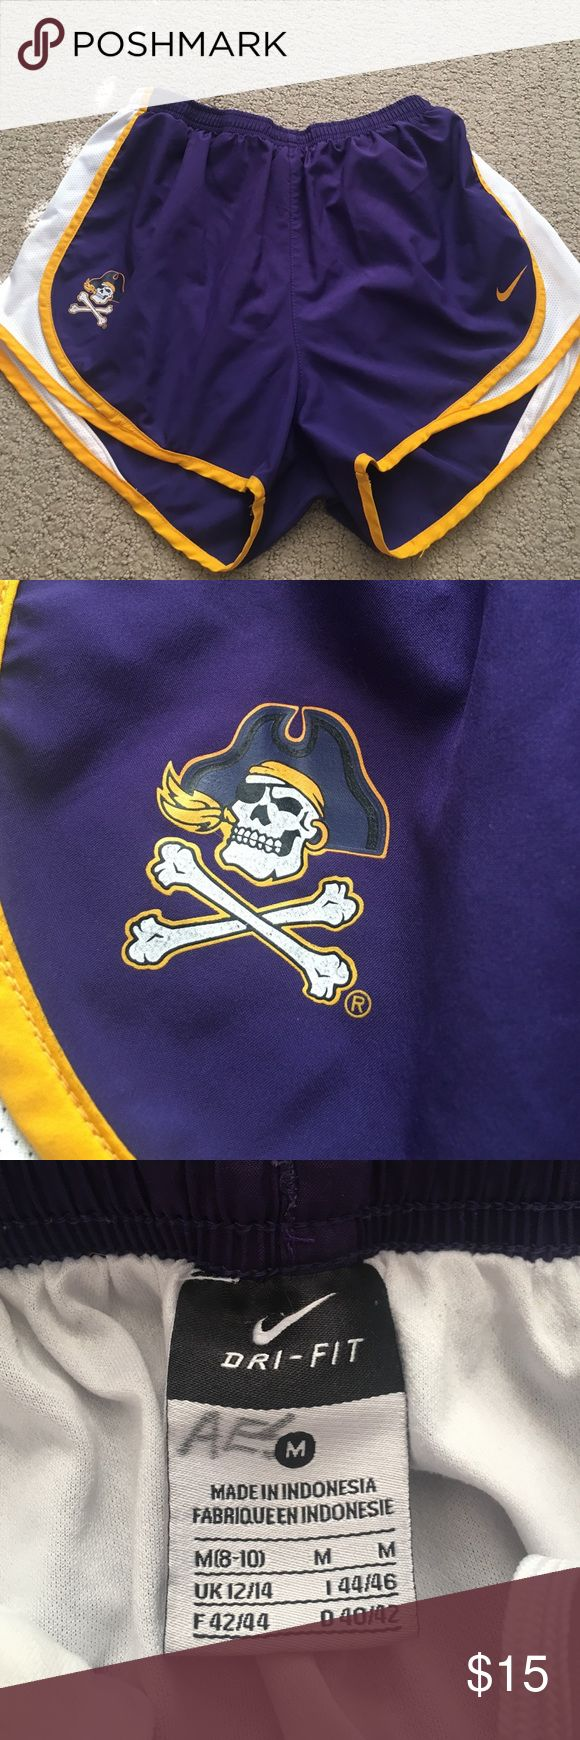 East Carolina University women's Nike Tempo shorts Purple with gold and white accent Nike Tempo running shorts. Has ECU skull and crossbones logo on lower right corner. Dri-fit material. Gently used. Faded sharpie initials on inside tag. Nike Shorts